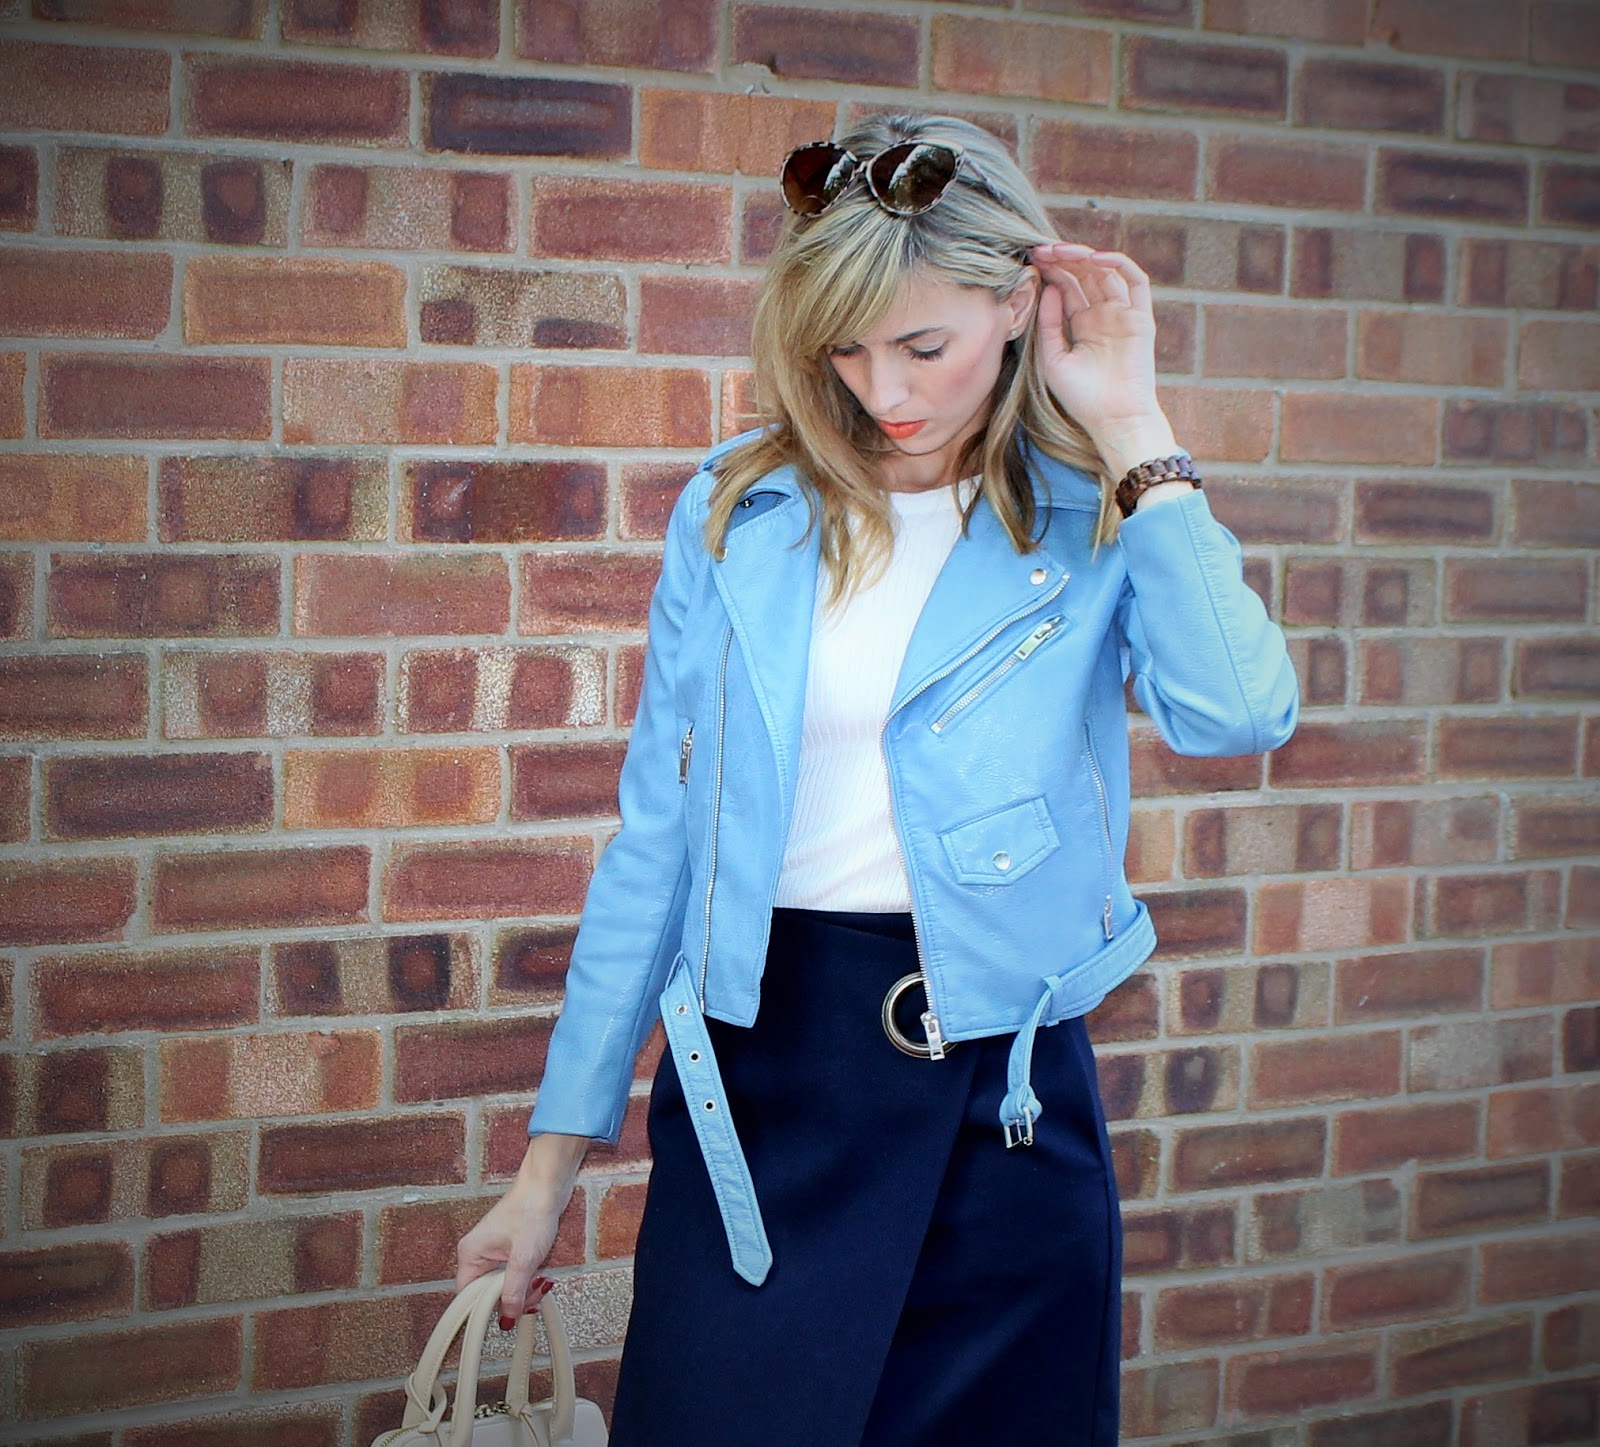 The Wrap Midi 7 - OOTD featuring Topshop skirt, River Island shoes and Zara jacket